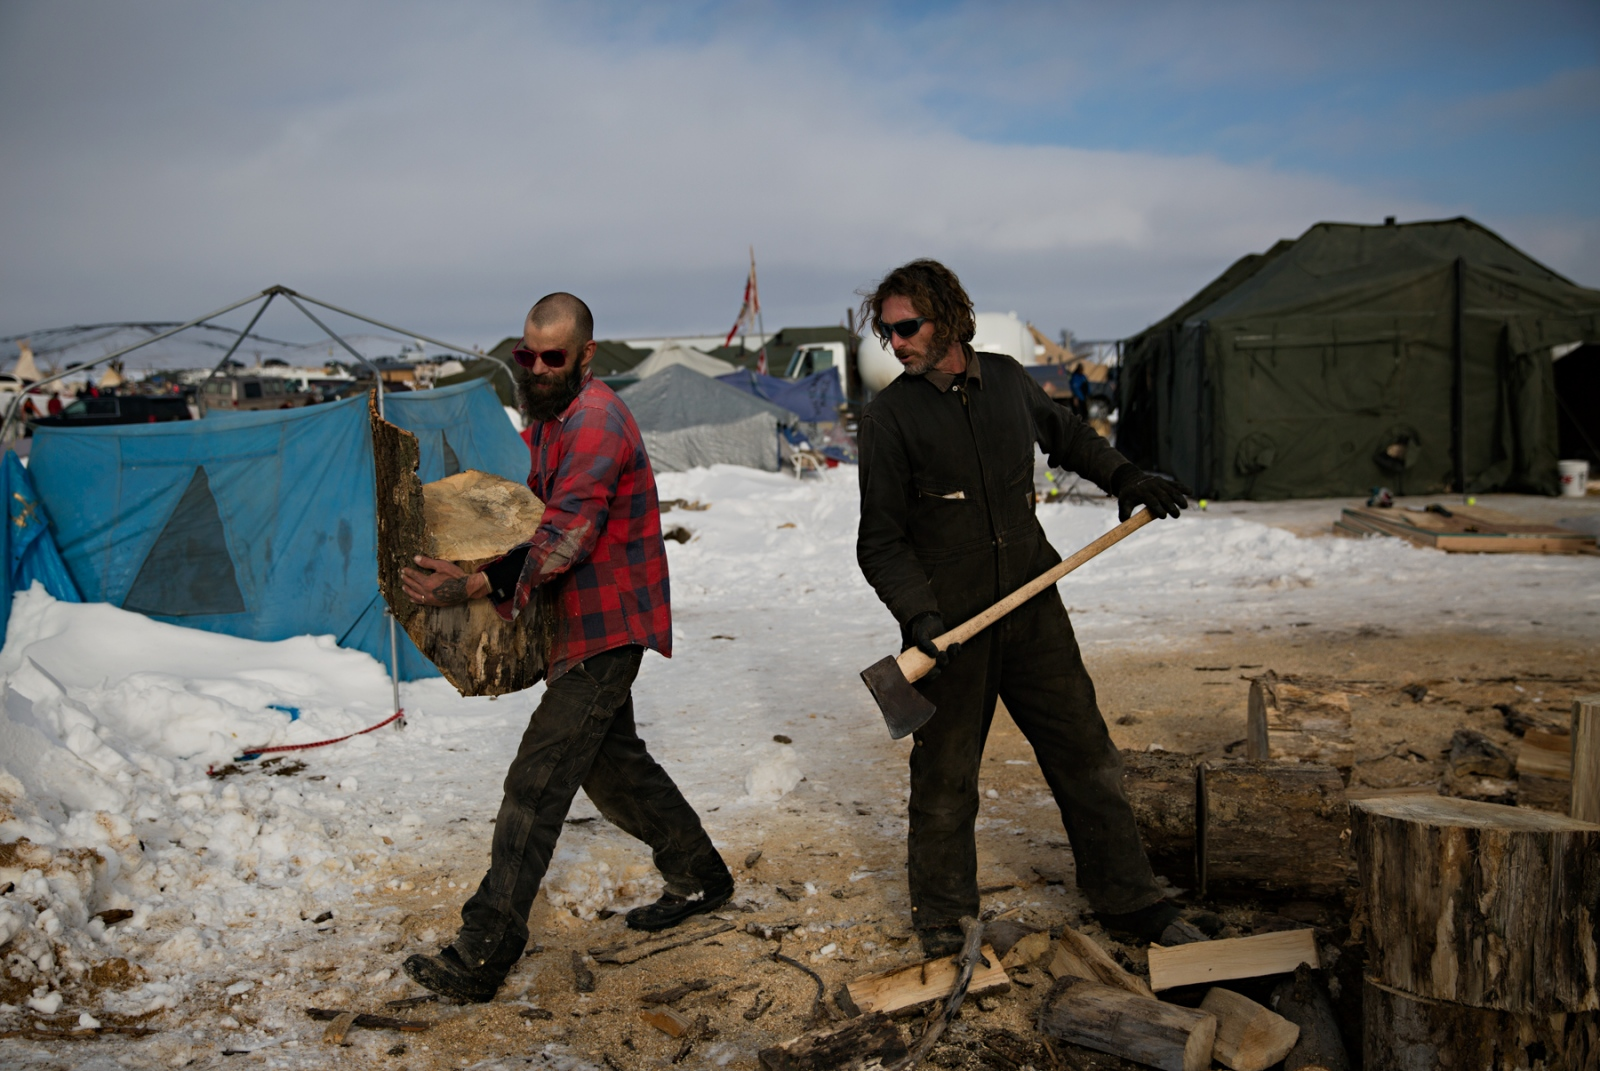 Aristeo Montasdioga (left), from Southern Arizona, and Timothy Jason-Reed (right), from Santa Monica, CA, chop wood for the community fire. The Army Corps of Engineers halted the Dakota Access Pipeline by denying the easement sought by the oil company to drill under the Missouri River.